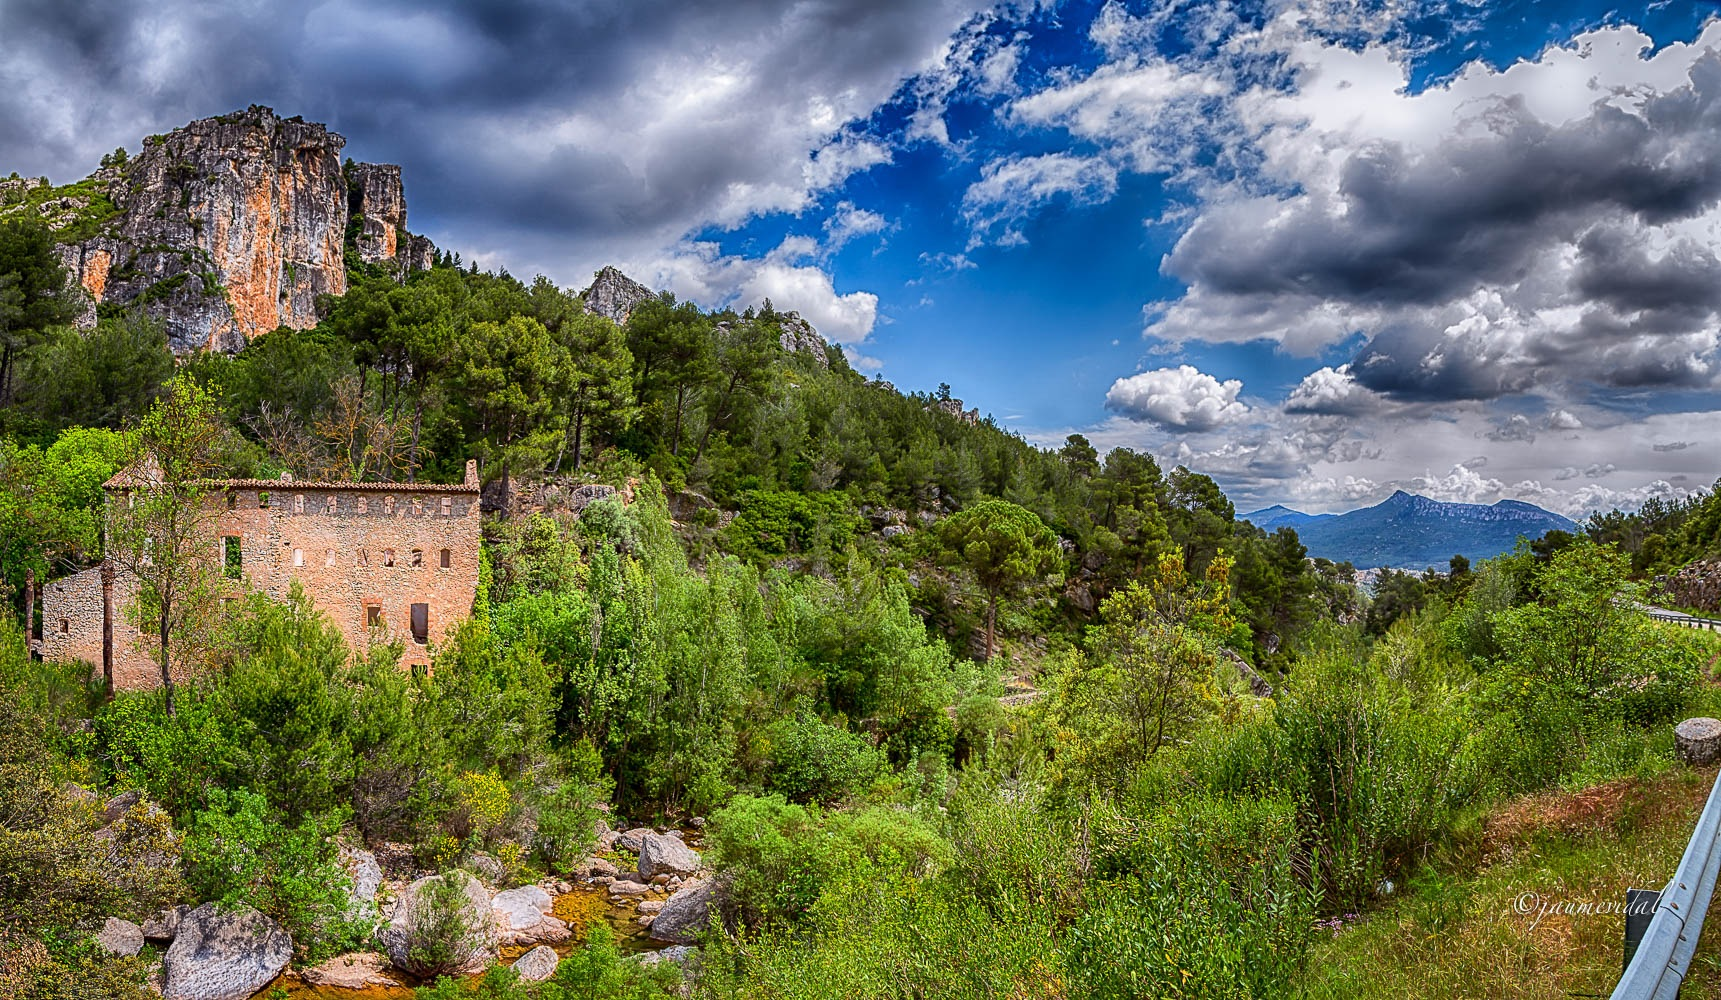 Valley of the Brugent River by JaumeVidal